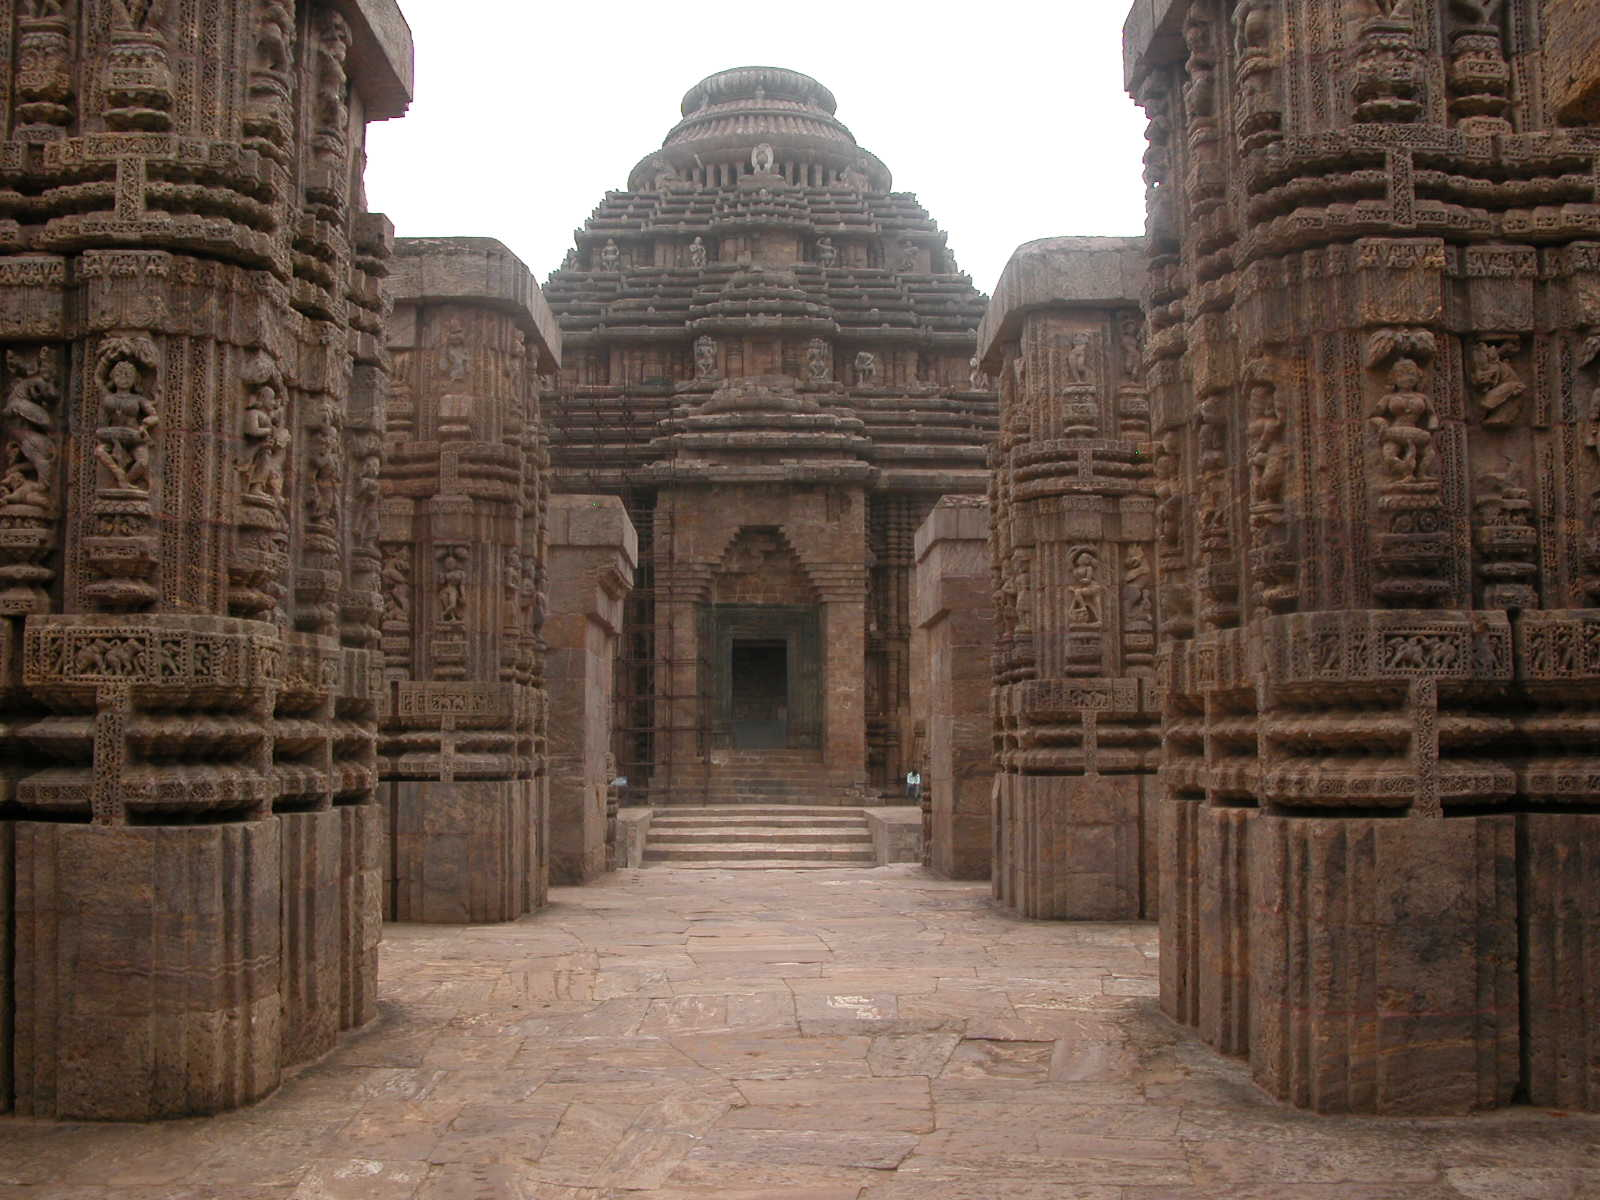 One Day Trip to Odisha: Is It Worth Visiting?